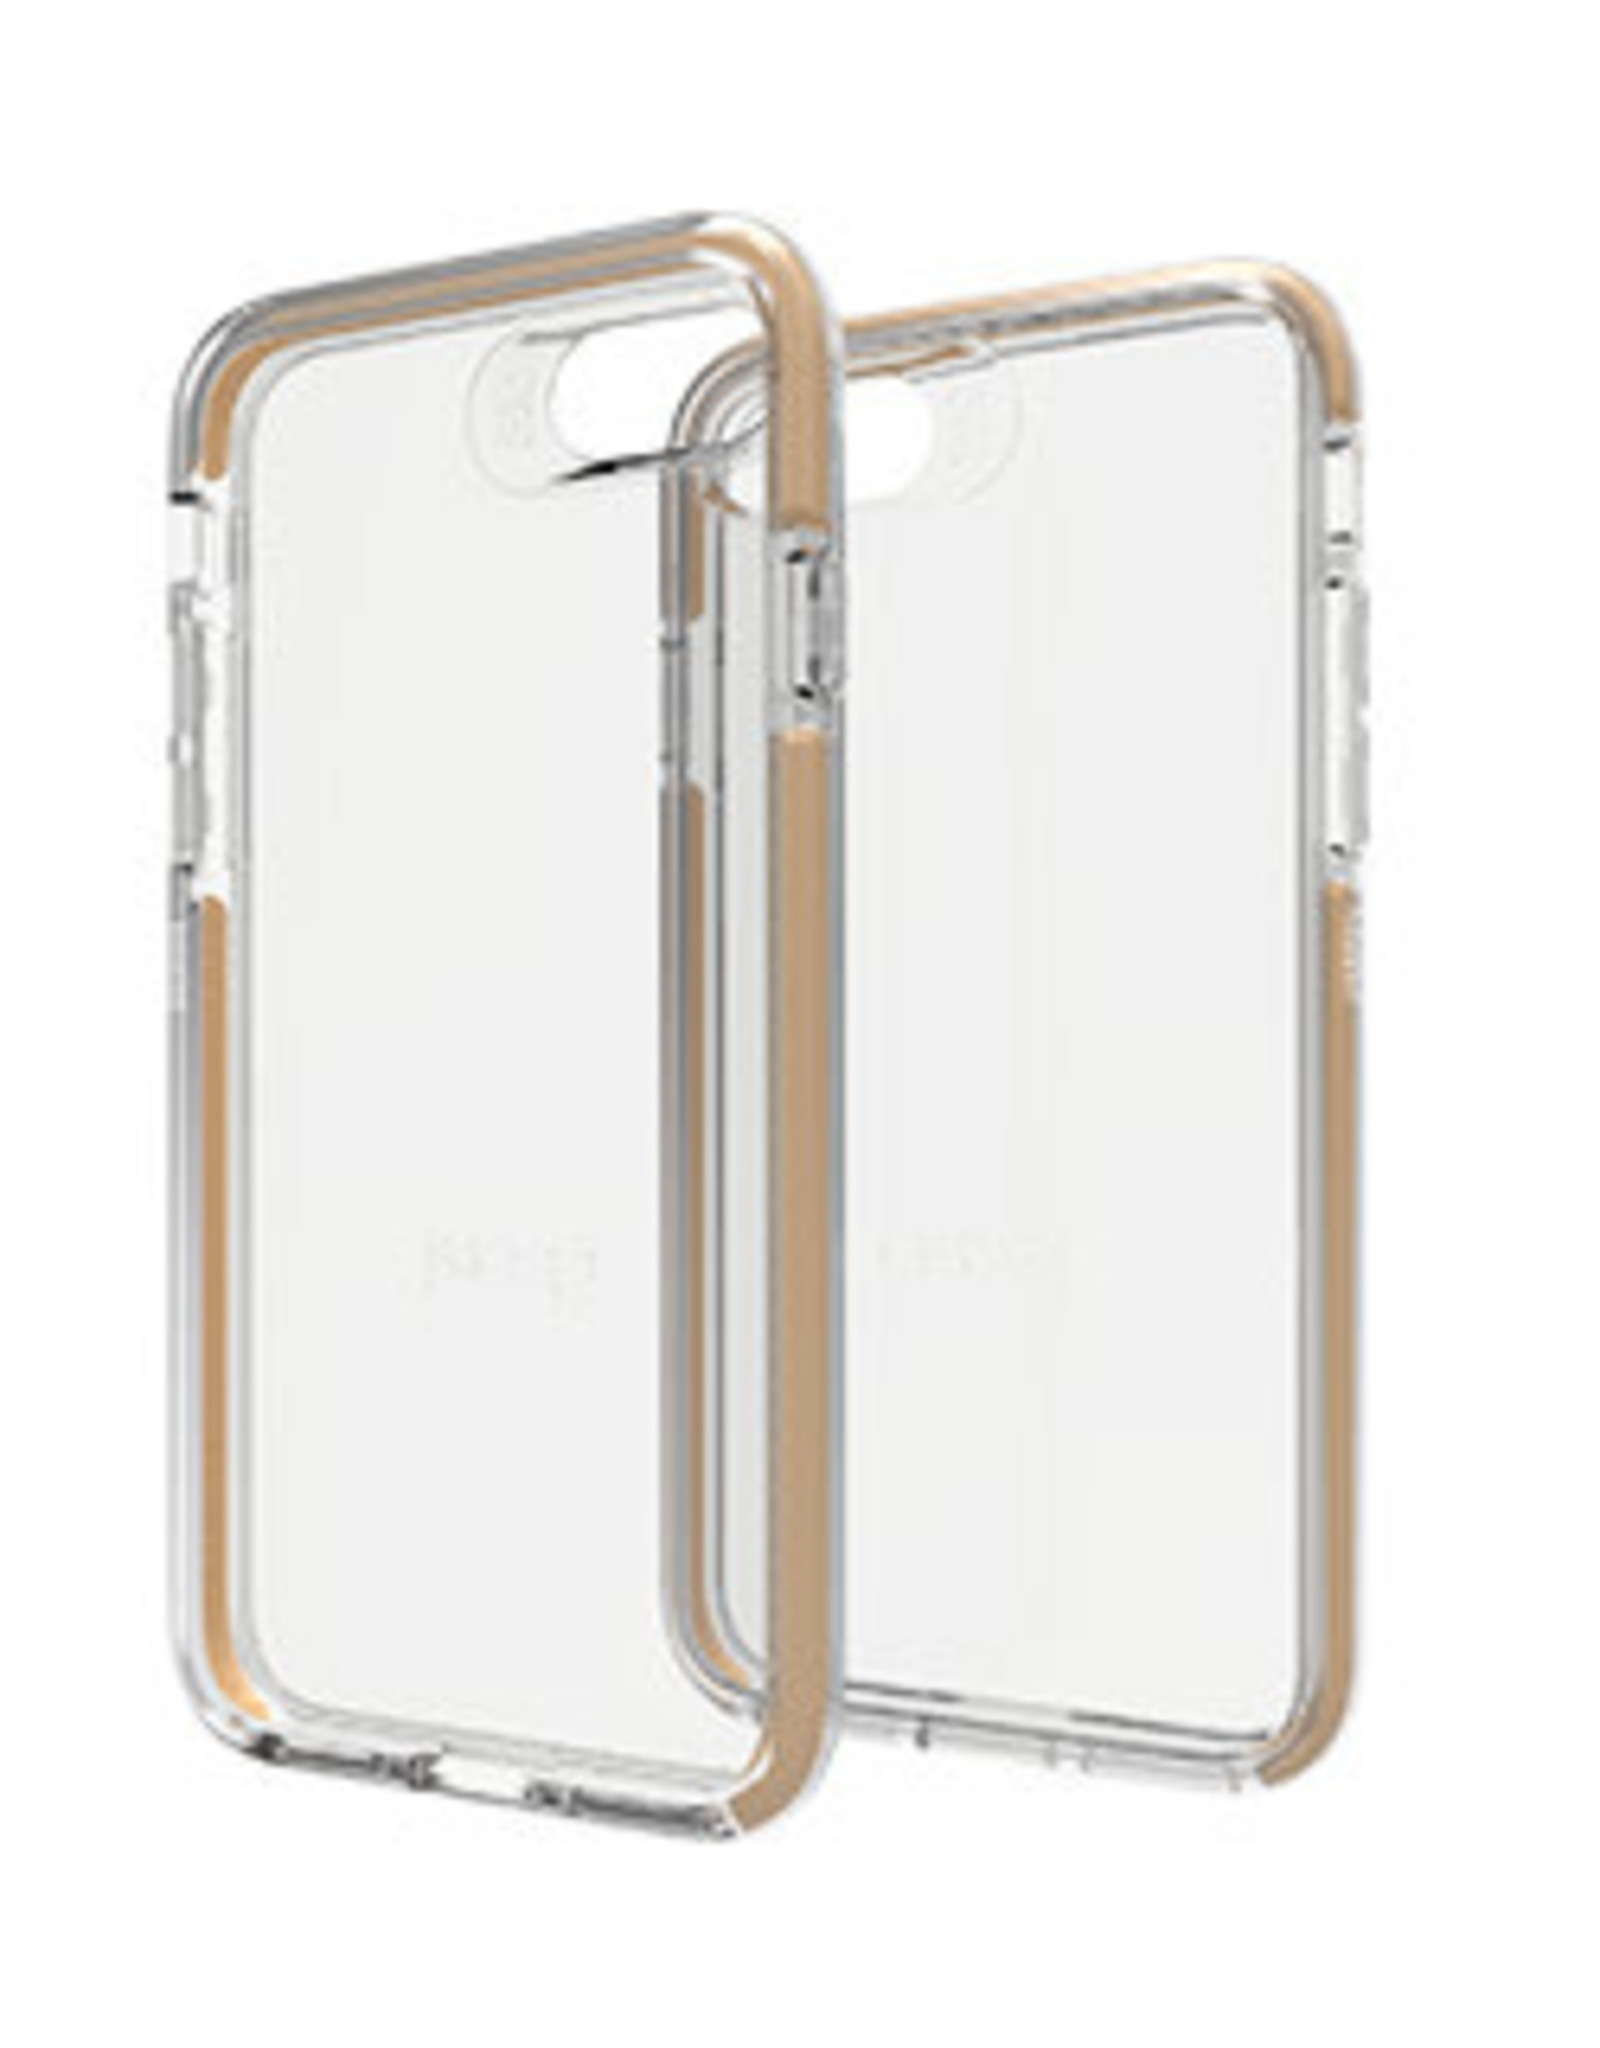 GEAR4 GEAR4 | iPhone 8/7/6/6s D3O Clear/Gold Piccadilly case | 15-00942